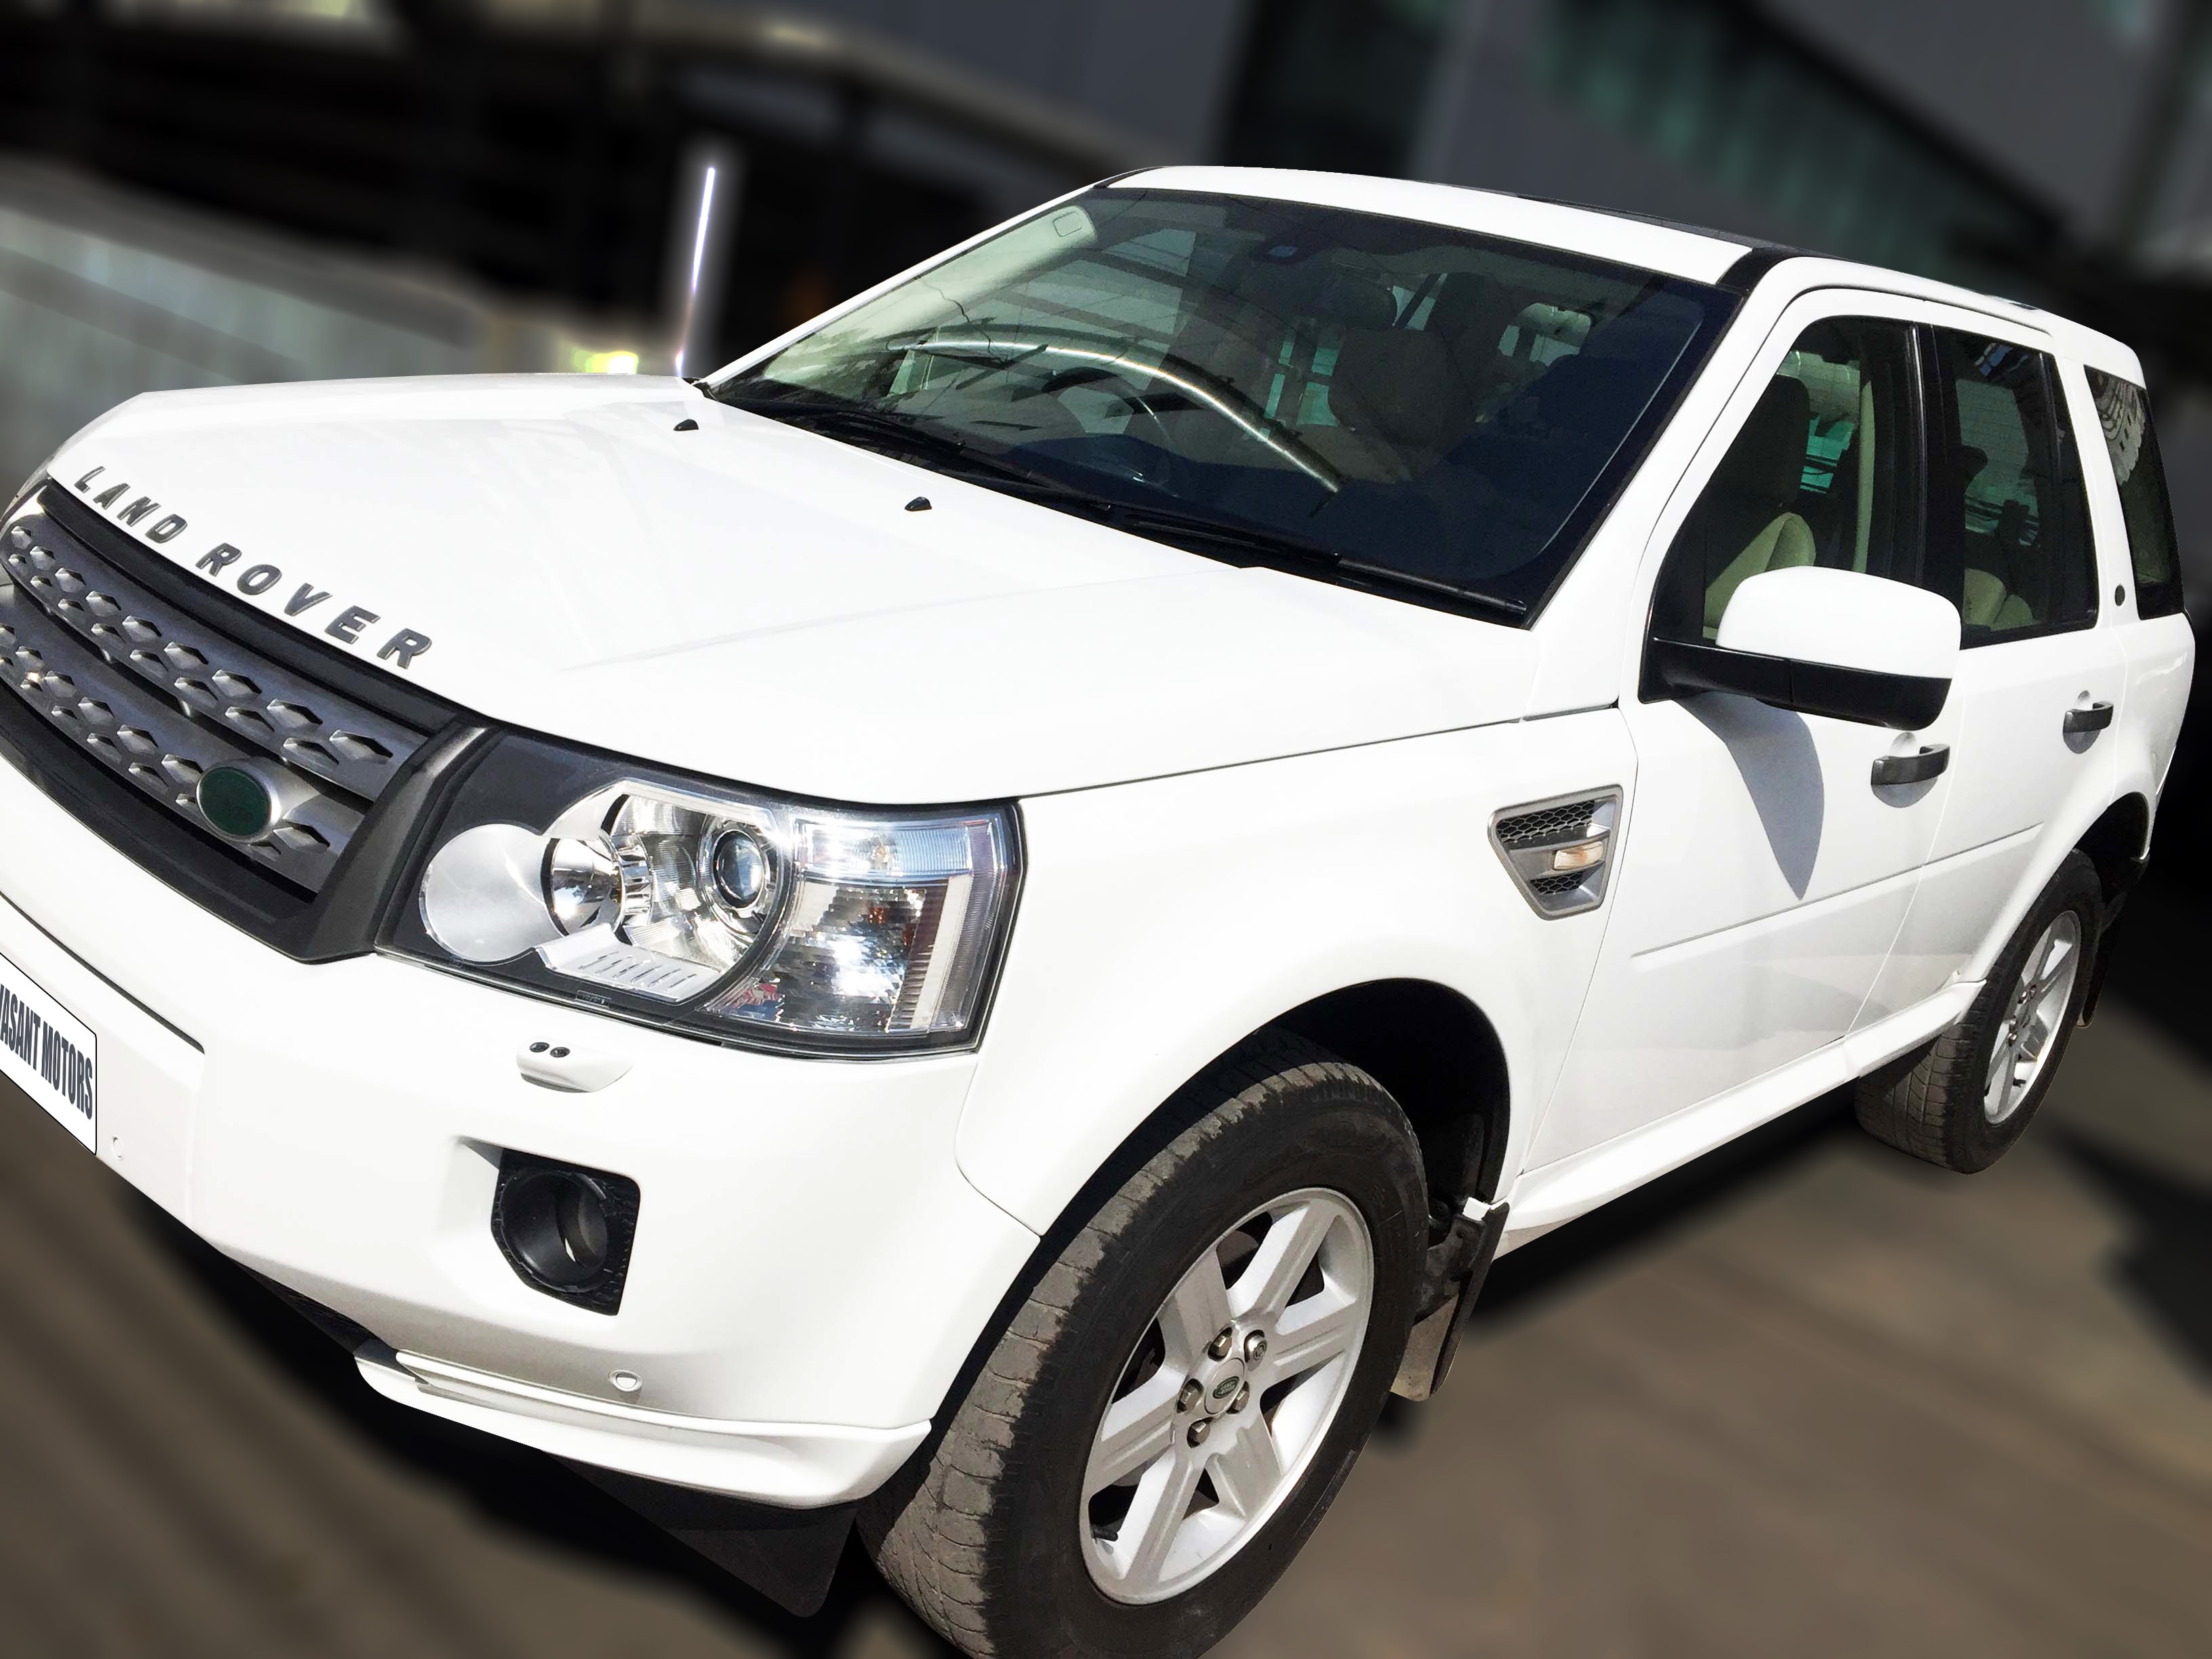 LAND ROVER FREE LANDER 2 TD4 2.2, (FUJI WHITE COLOR, DIESEL) 2011 model done only 68, 000kms in absolute mint condition... buy now and get one year #service pack from us. For further info call 7569696666